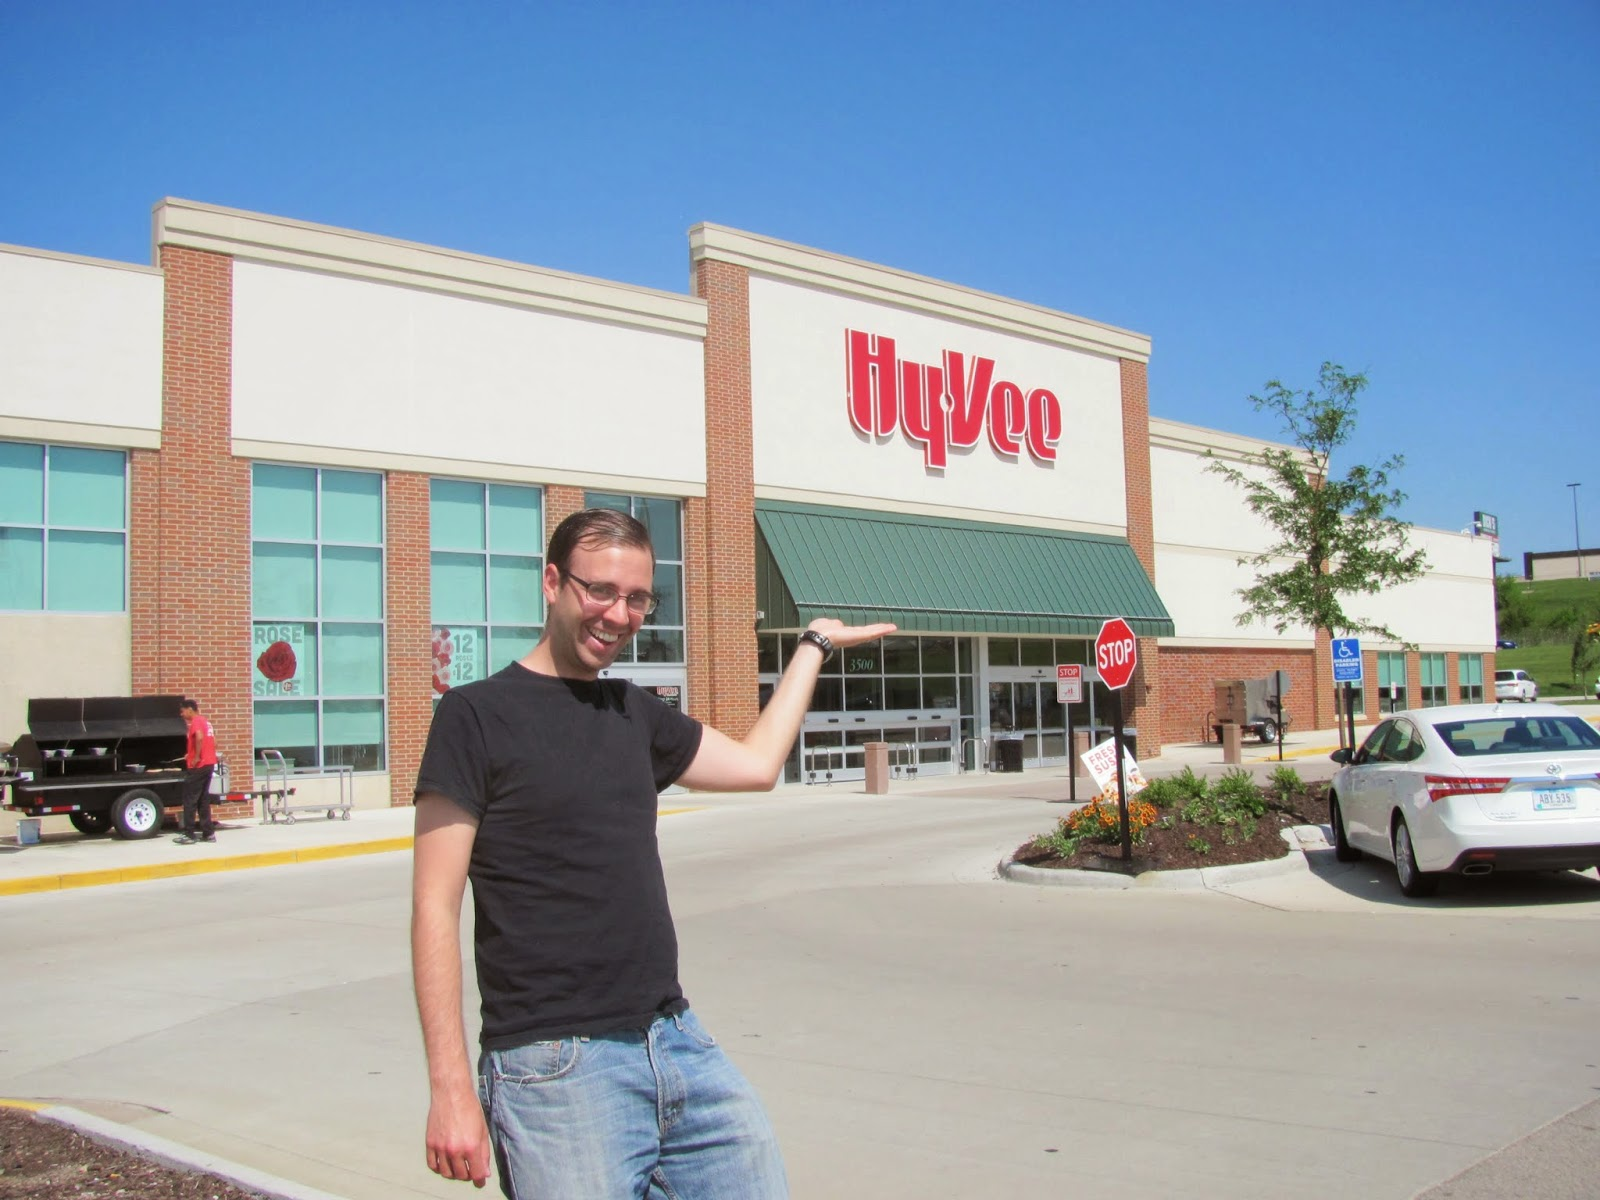 Finding the Front Door of Hy-Vee